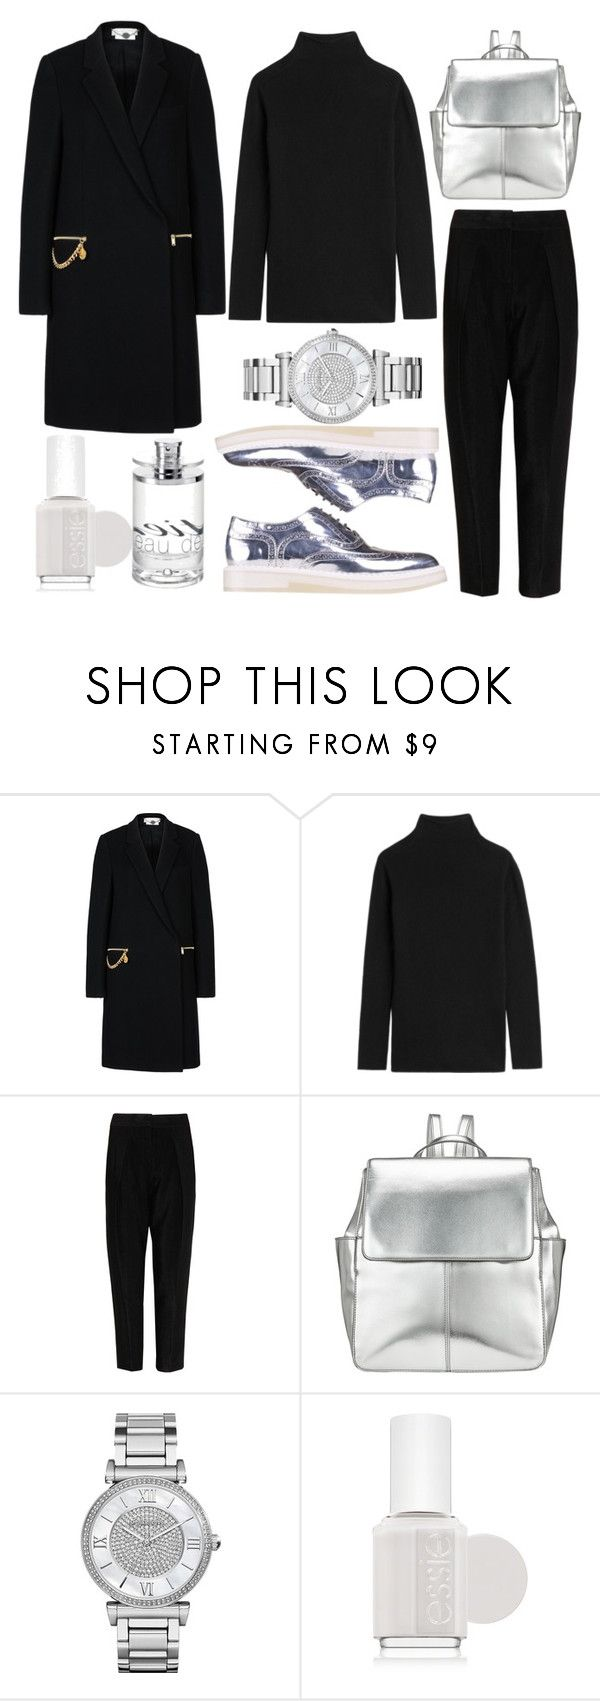 Outfit #142 by sofi6277 on Polyvore featuring Etro, STELLA McCARTNEY, Alexander Wang, Kin by John Lewis, Michael Kors, Cartier and Essie